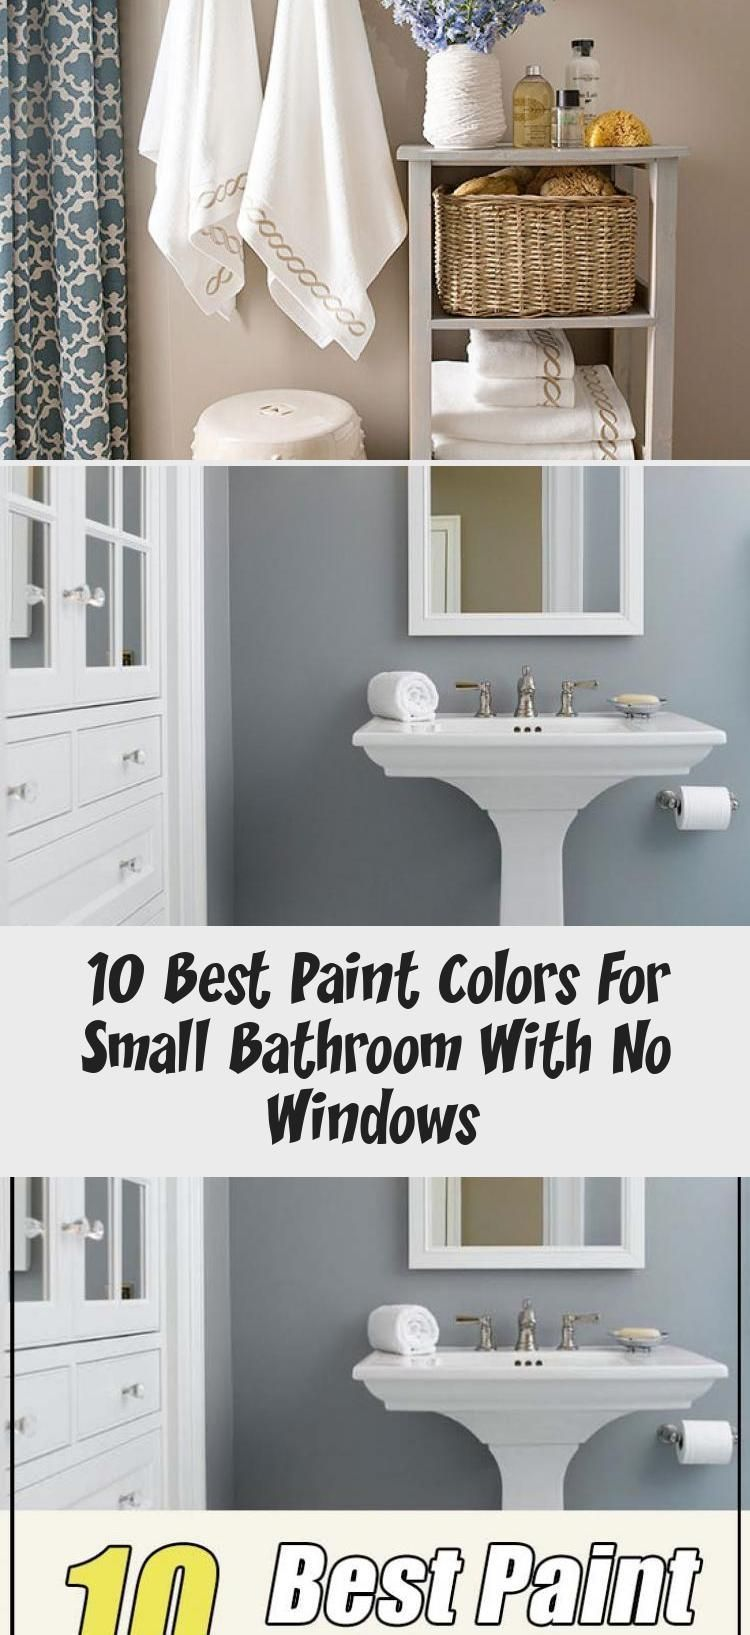 10 Best Paint Colors For Small Bathroom With No Windows Bathroom Neutralbathroomcolors Small Bathroom Colors Small Bathroom Paint Colors Gray Bathroom Decor